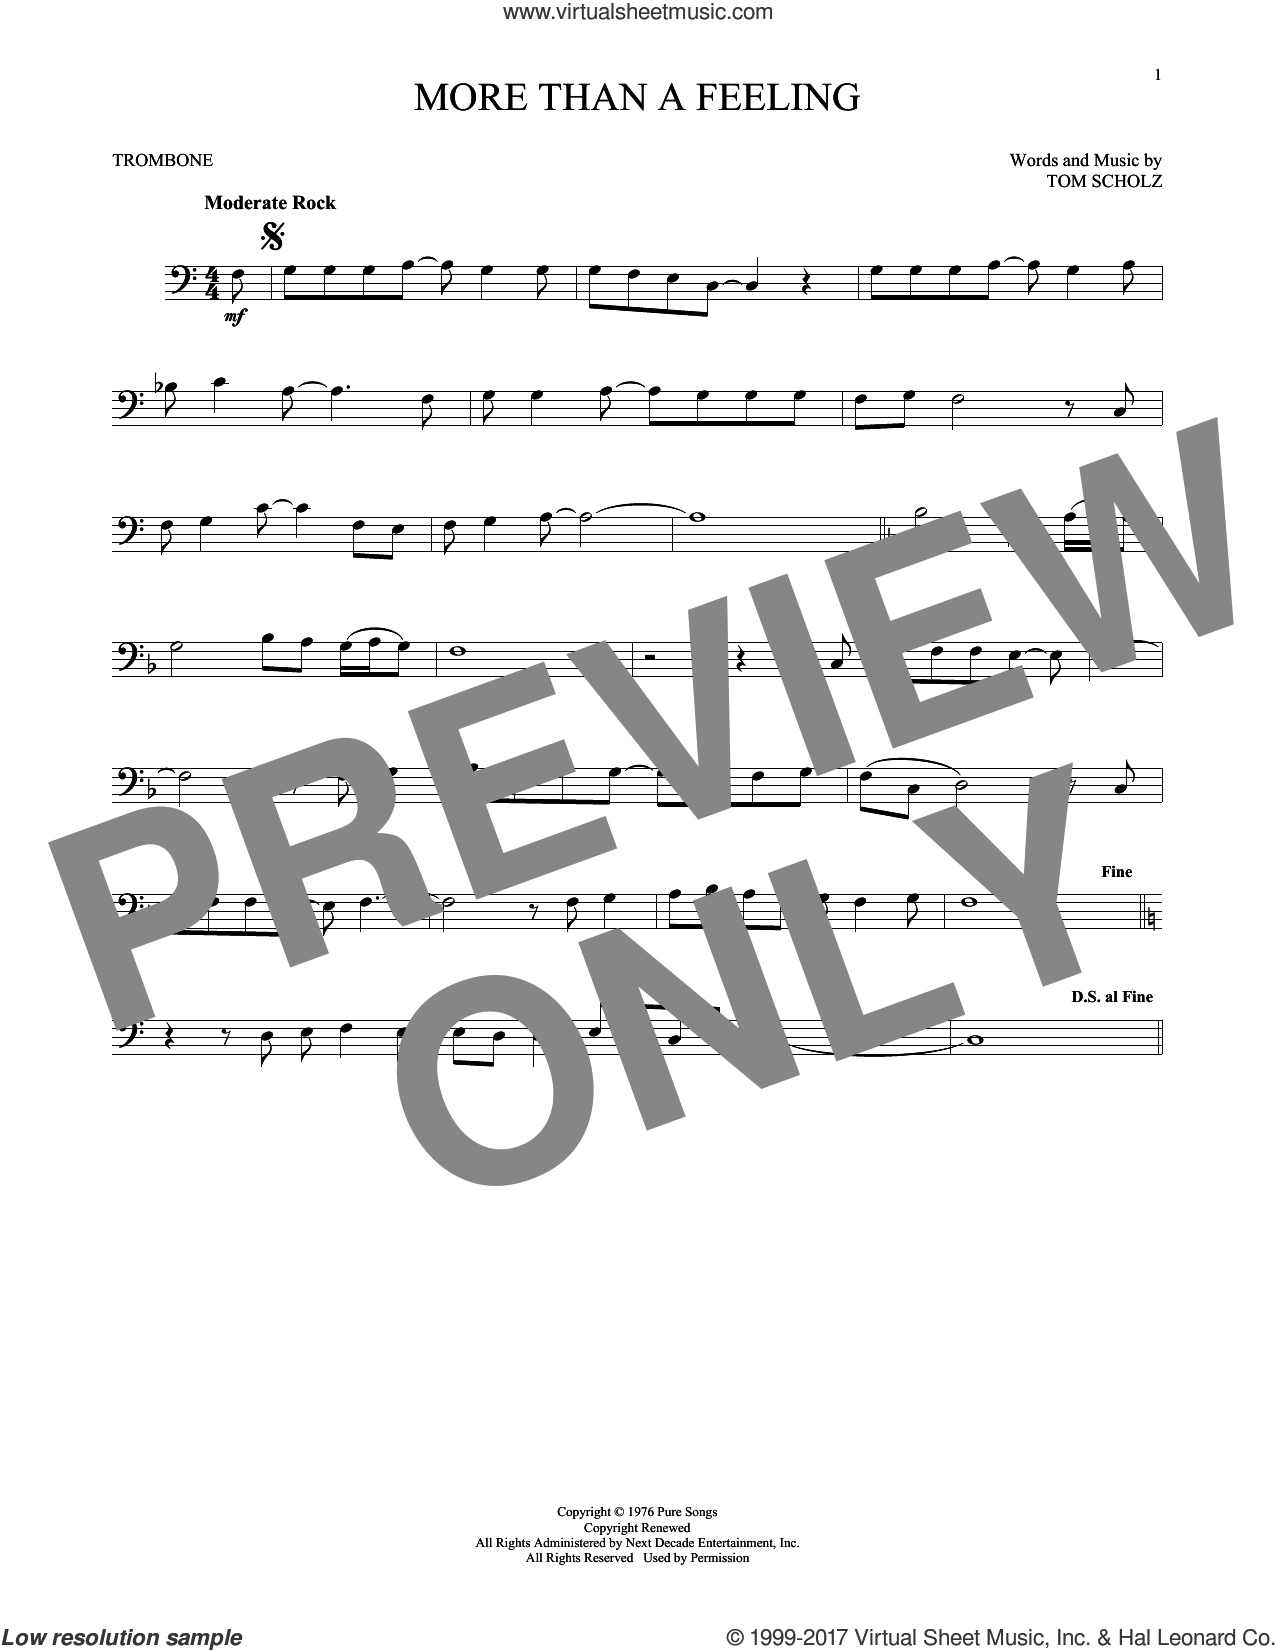 More Than A Feeling sheet music for trombone solo by Boston and Tom Scholz, intermediate